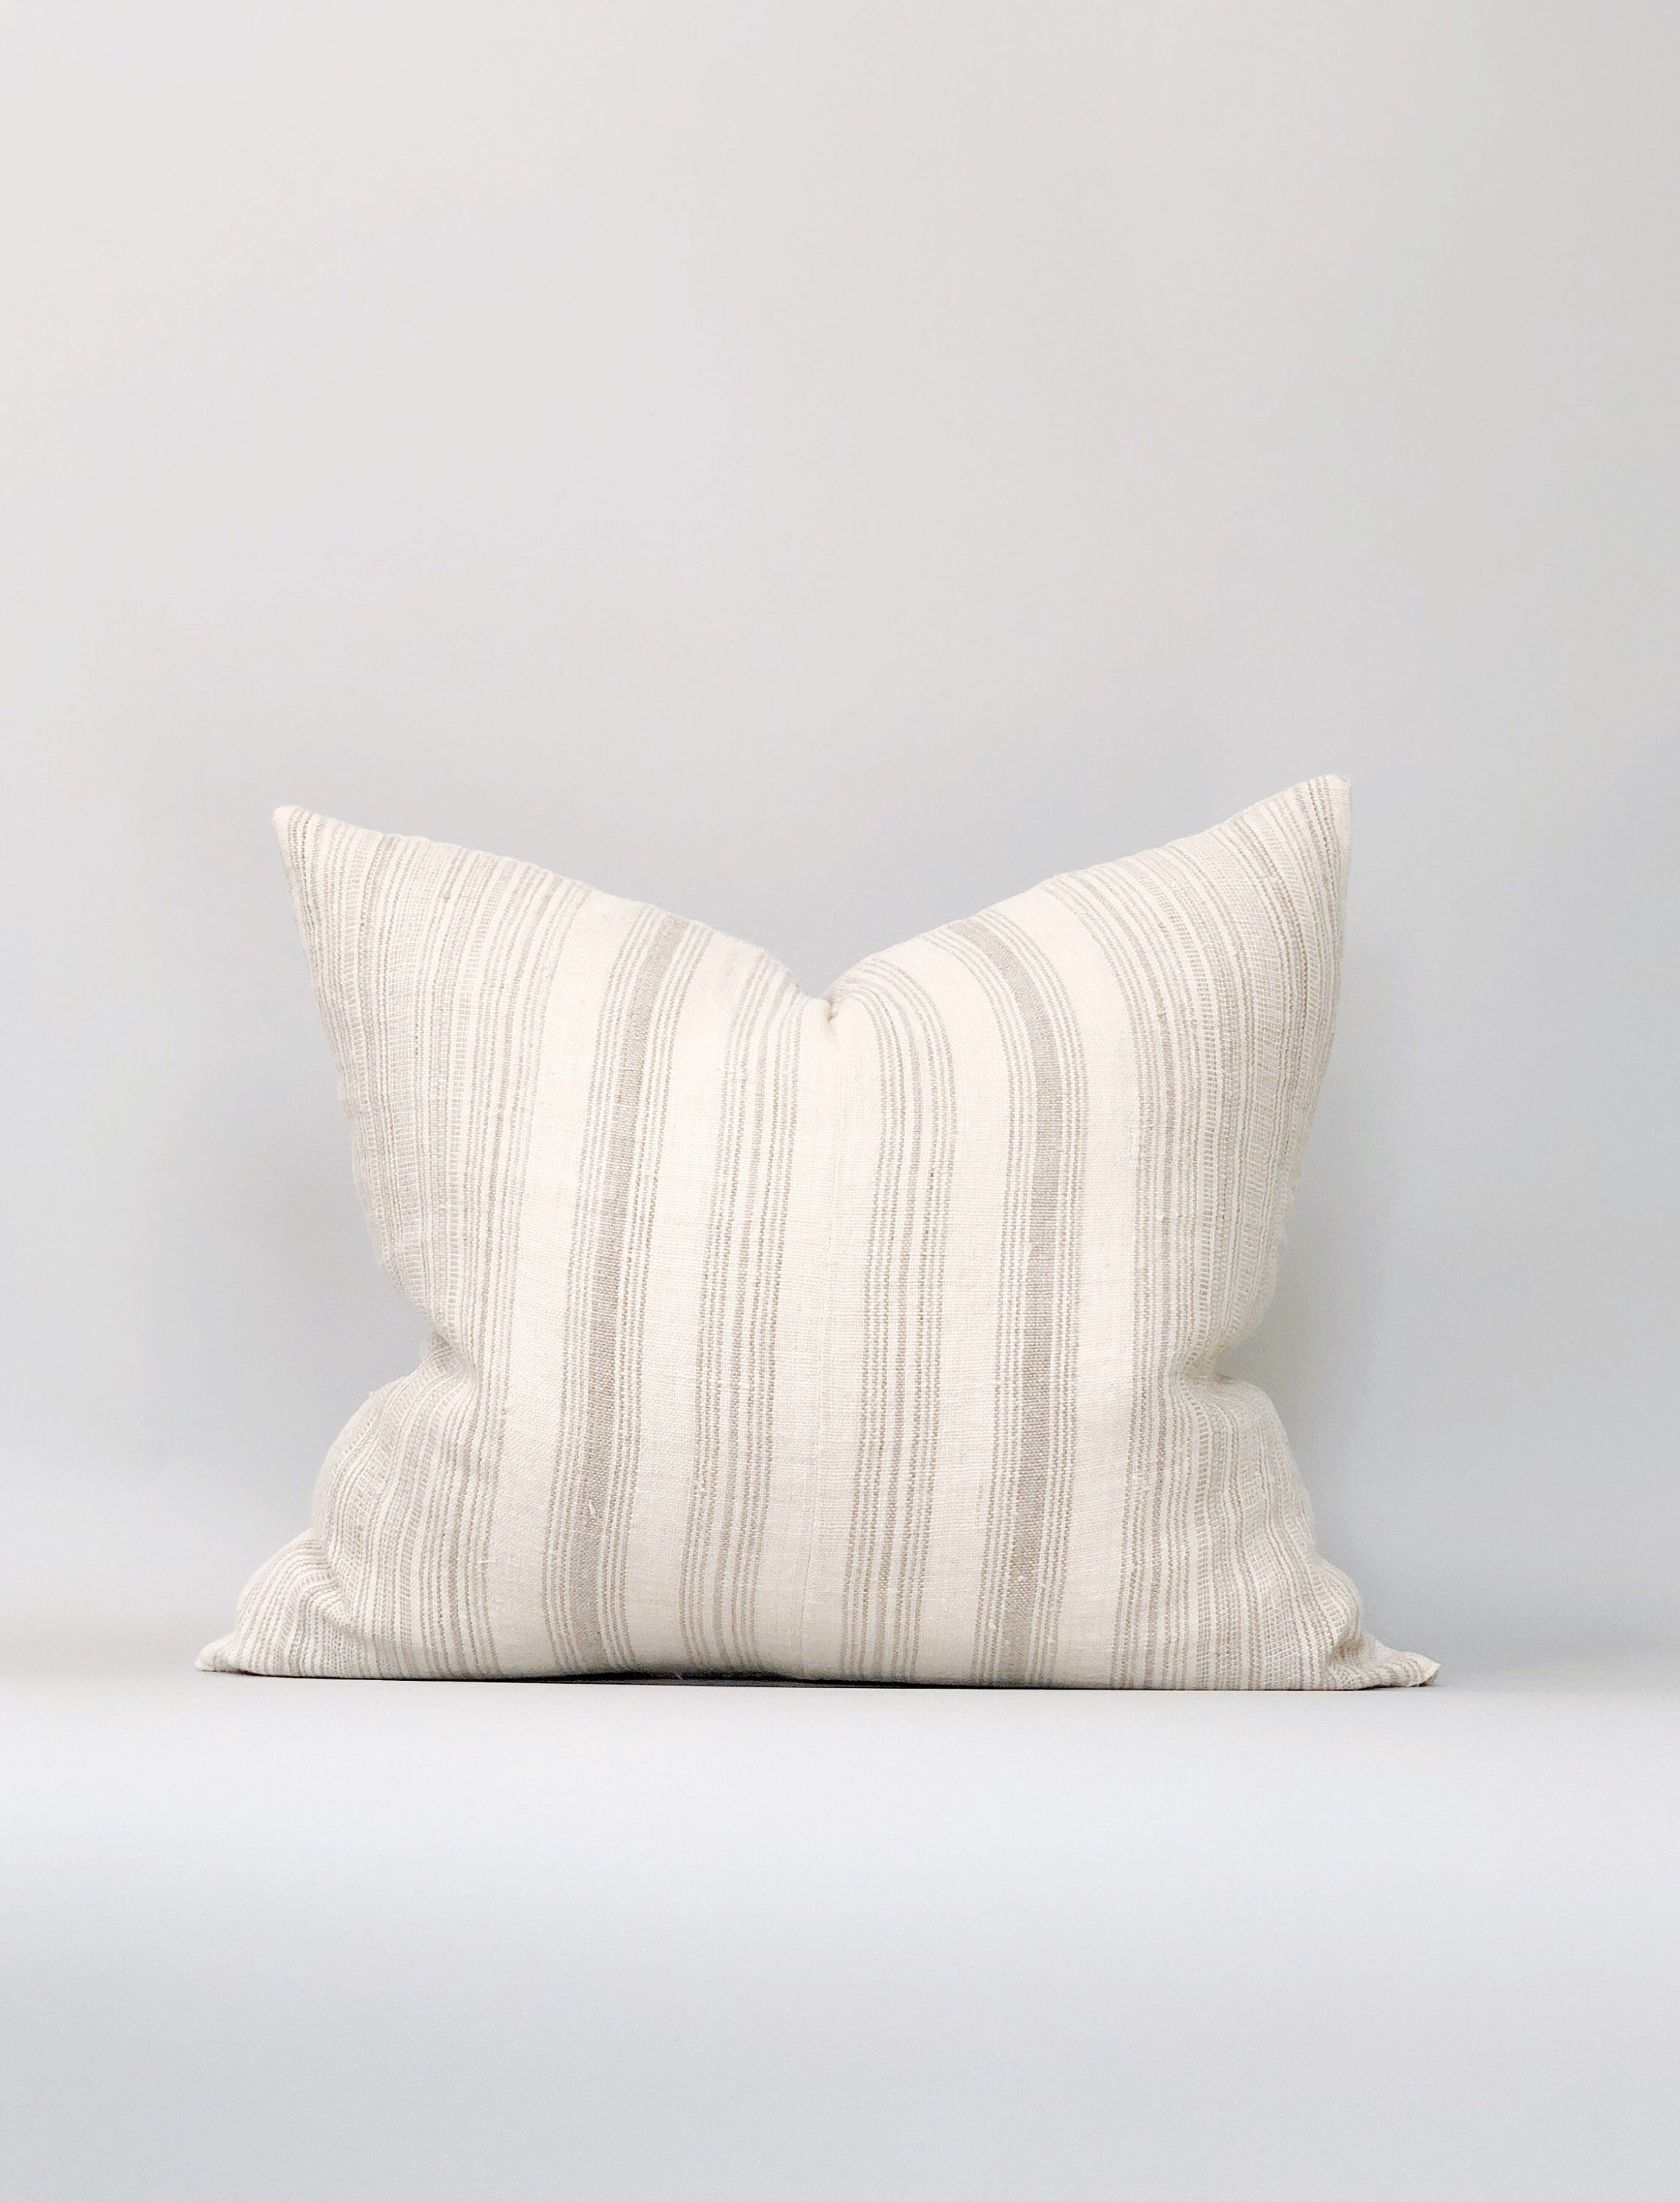 20x23 Striped Hemp Linen Pillow Case Faded Taupe Grey Designer Vintage By Clothandmain On Etsy Https Www Etsy Linen Pillow Cases Pillows Stripes Inspiration